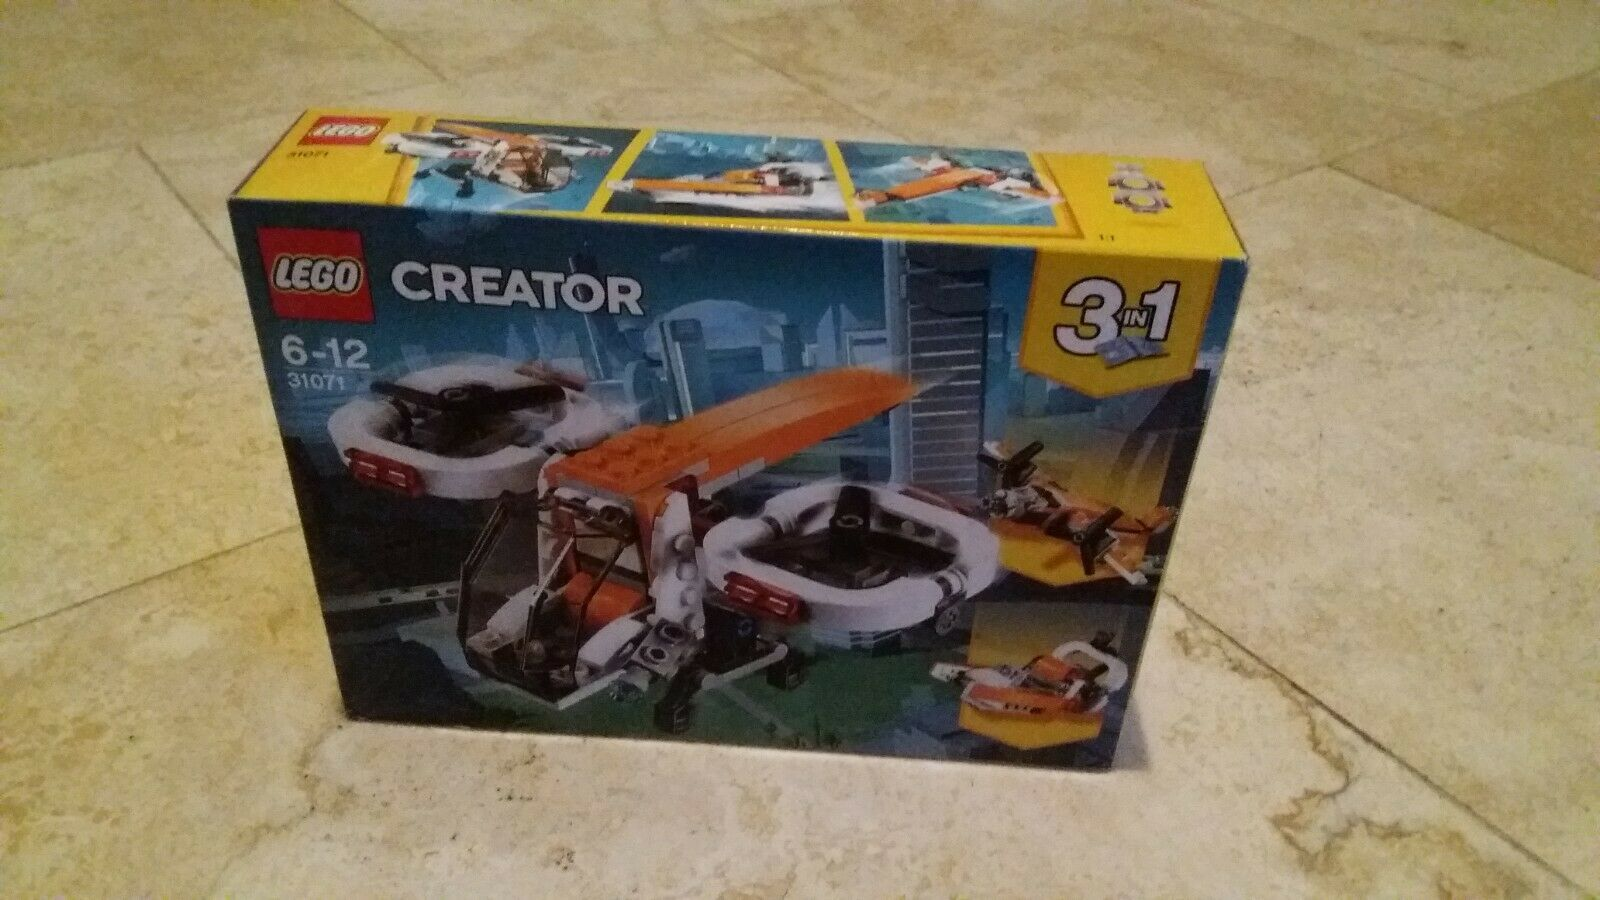 Lego Creator 3in1 31071 Drone Explorer Still in box